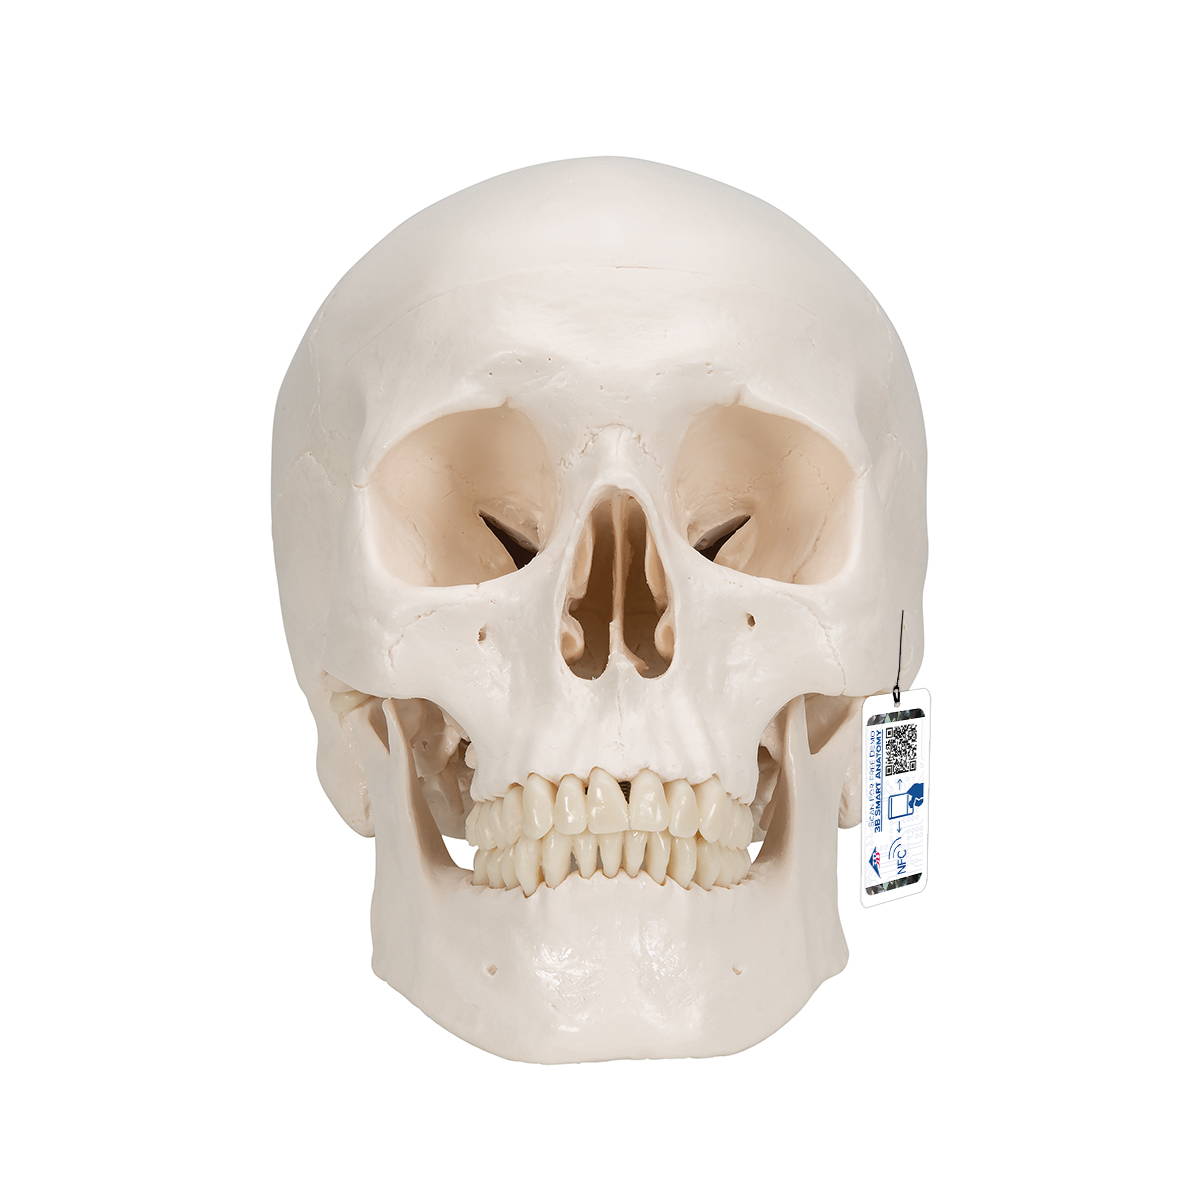 Human Skull Model | Plastic Skull Model | Classic Human Skull Model